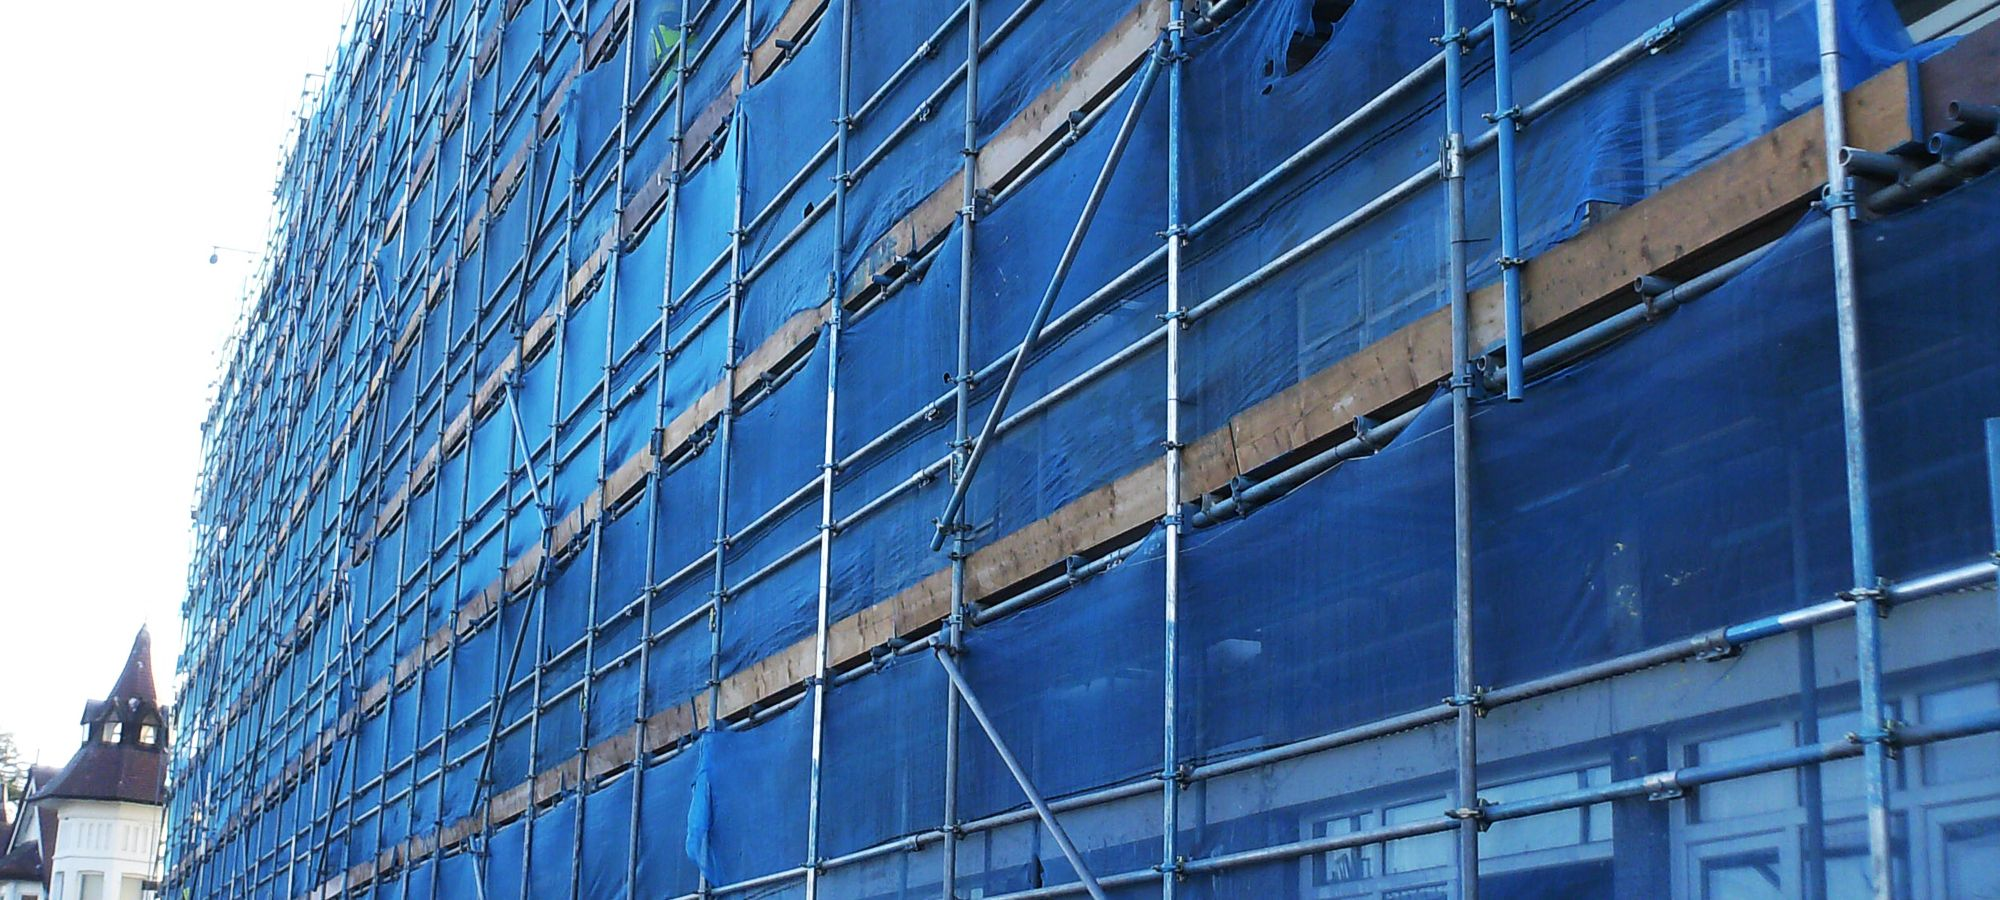 Scaffolding quotation